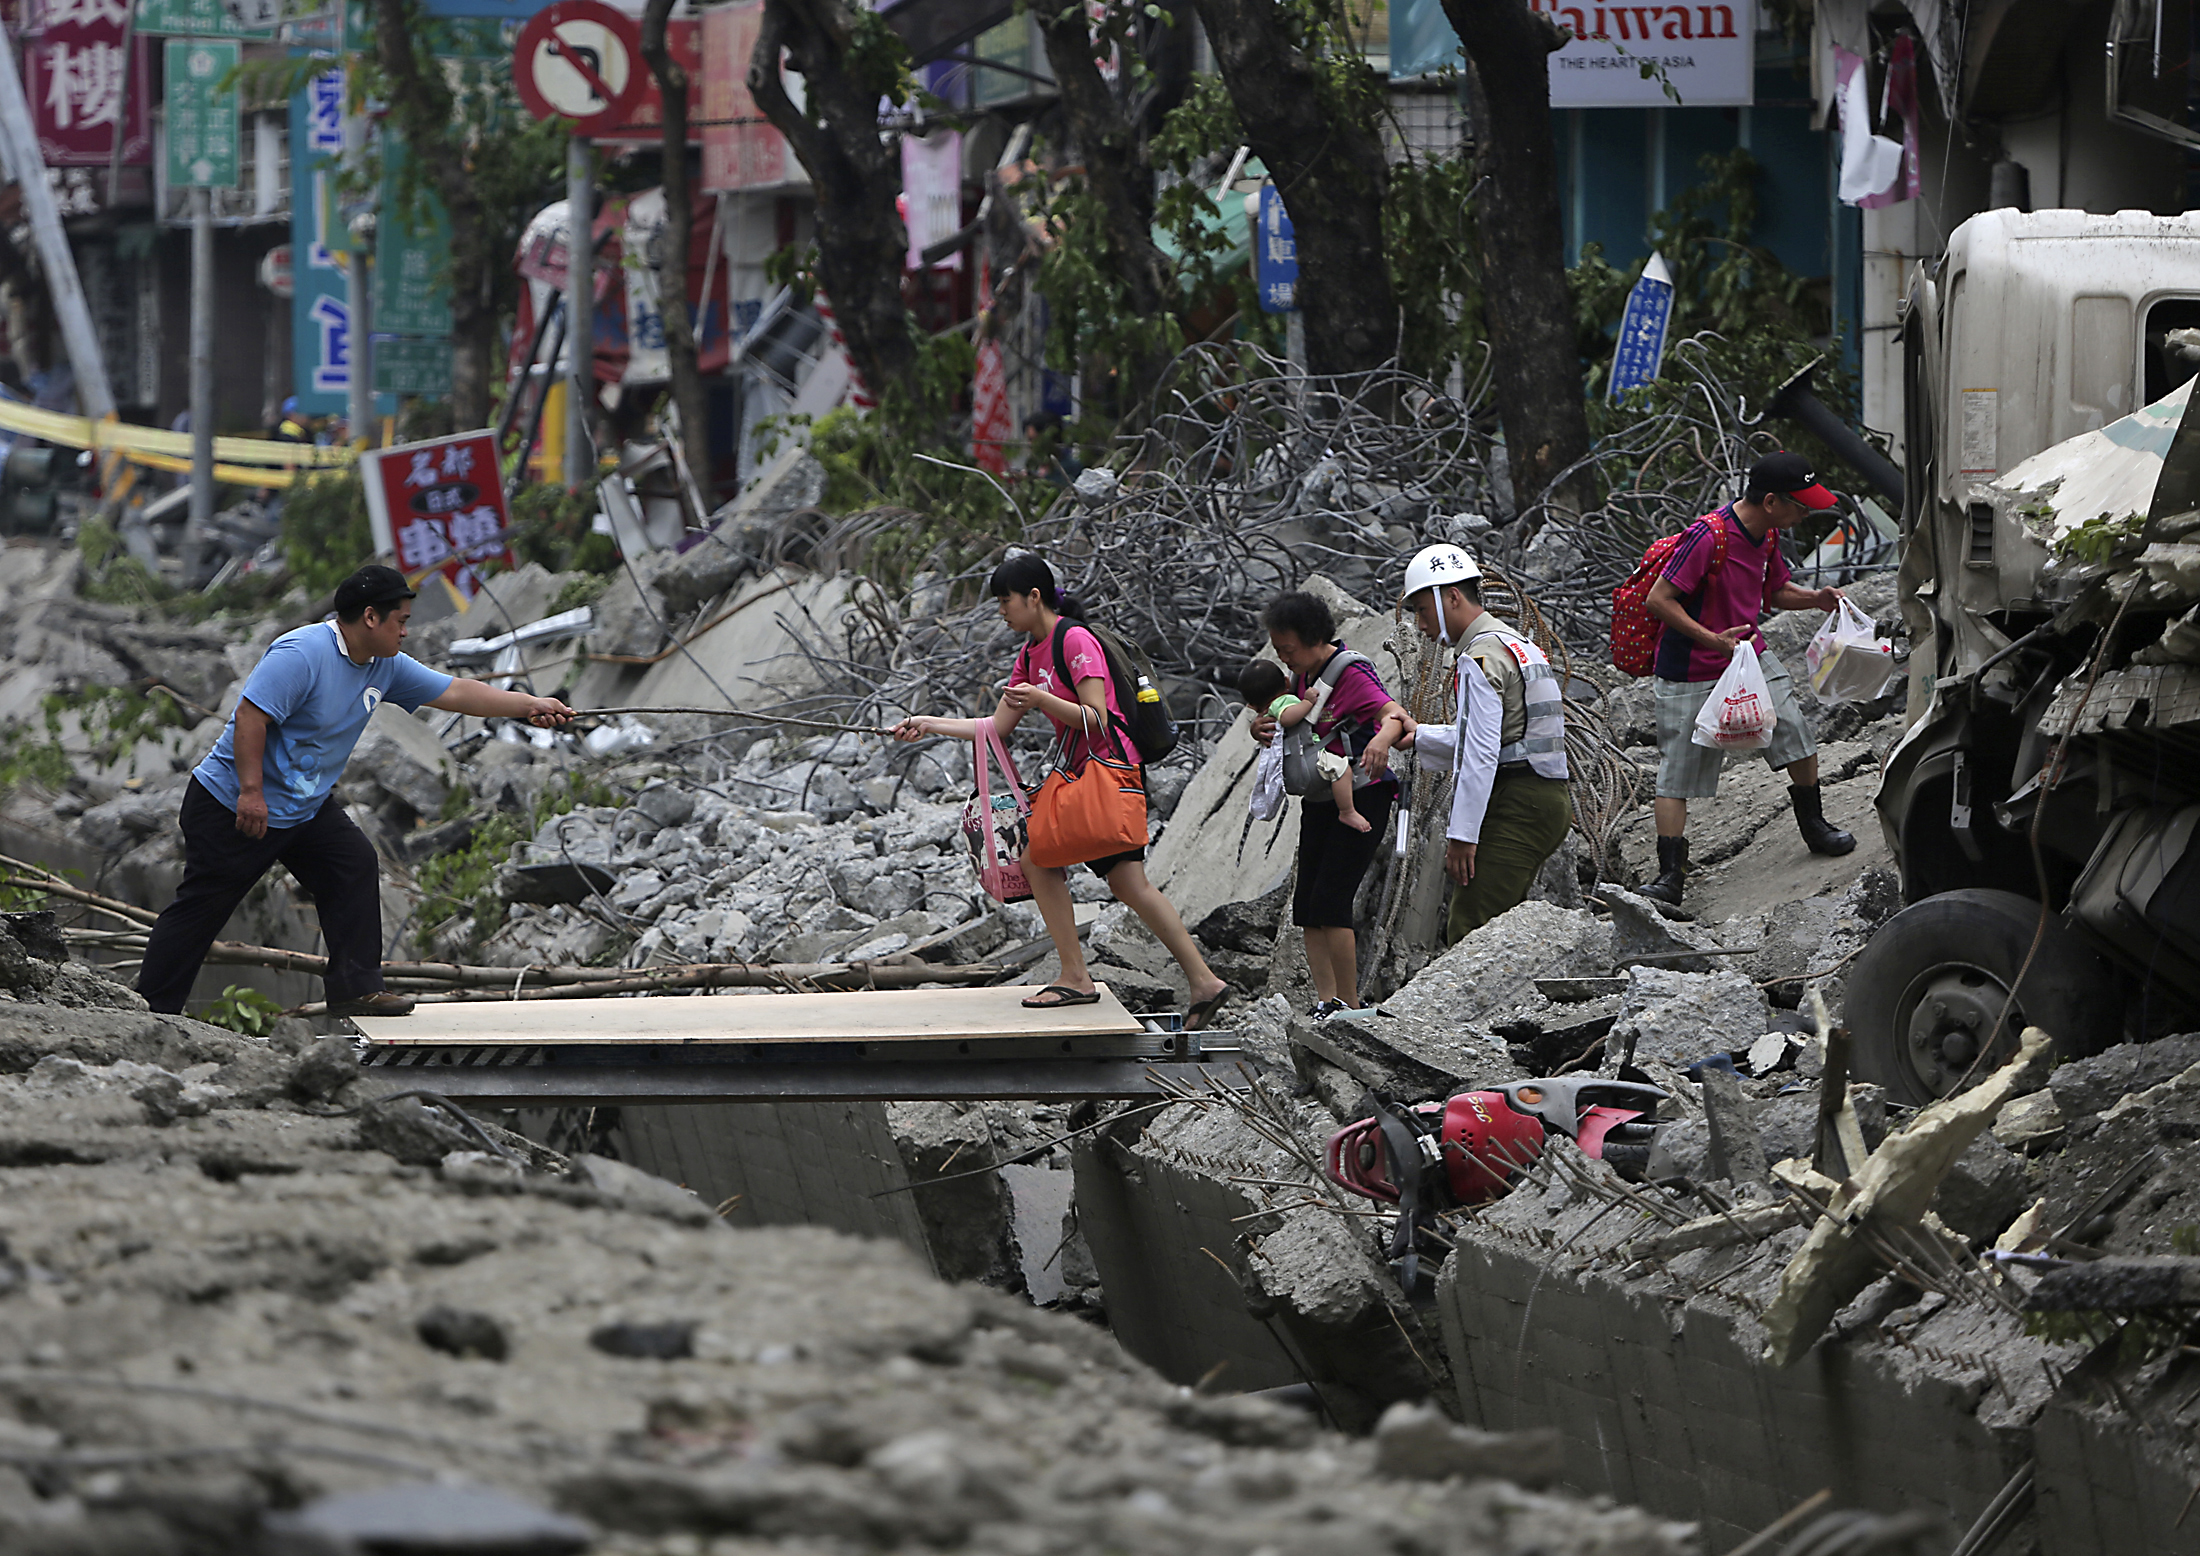 People walk across a gap caused by an explosion in Kaohsiung, southern Taiwan on Aug. 1, 2014.